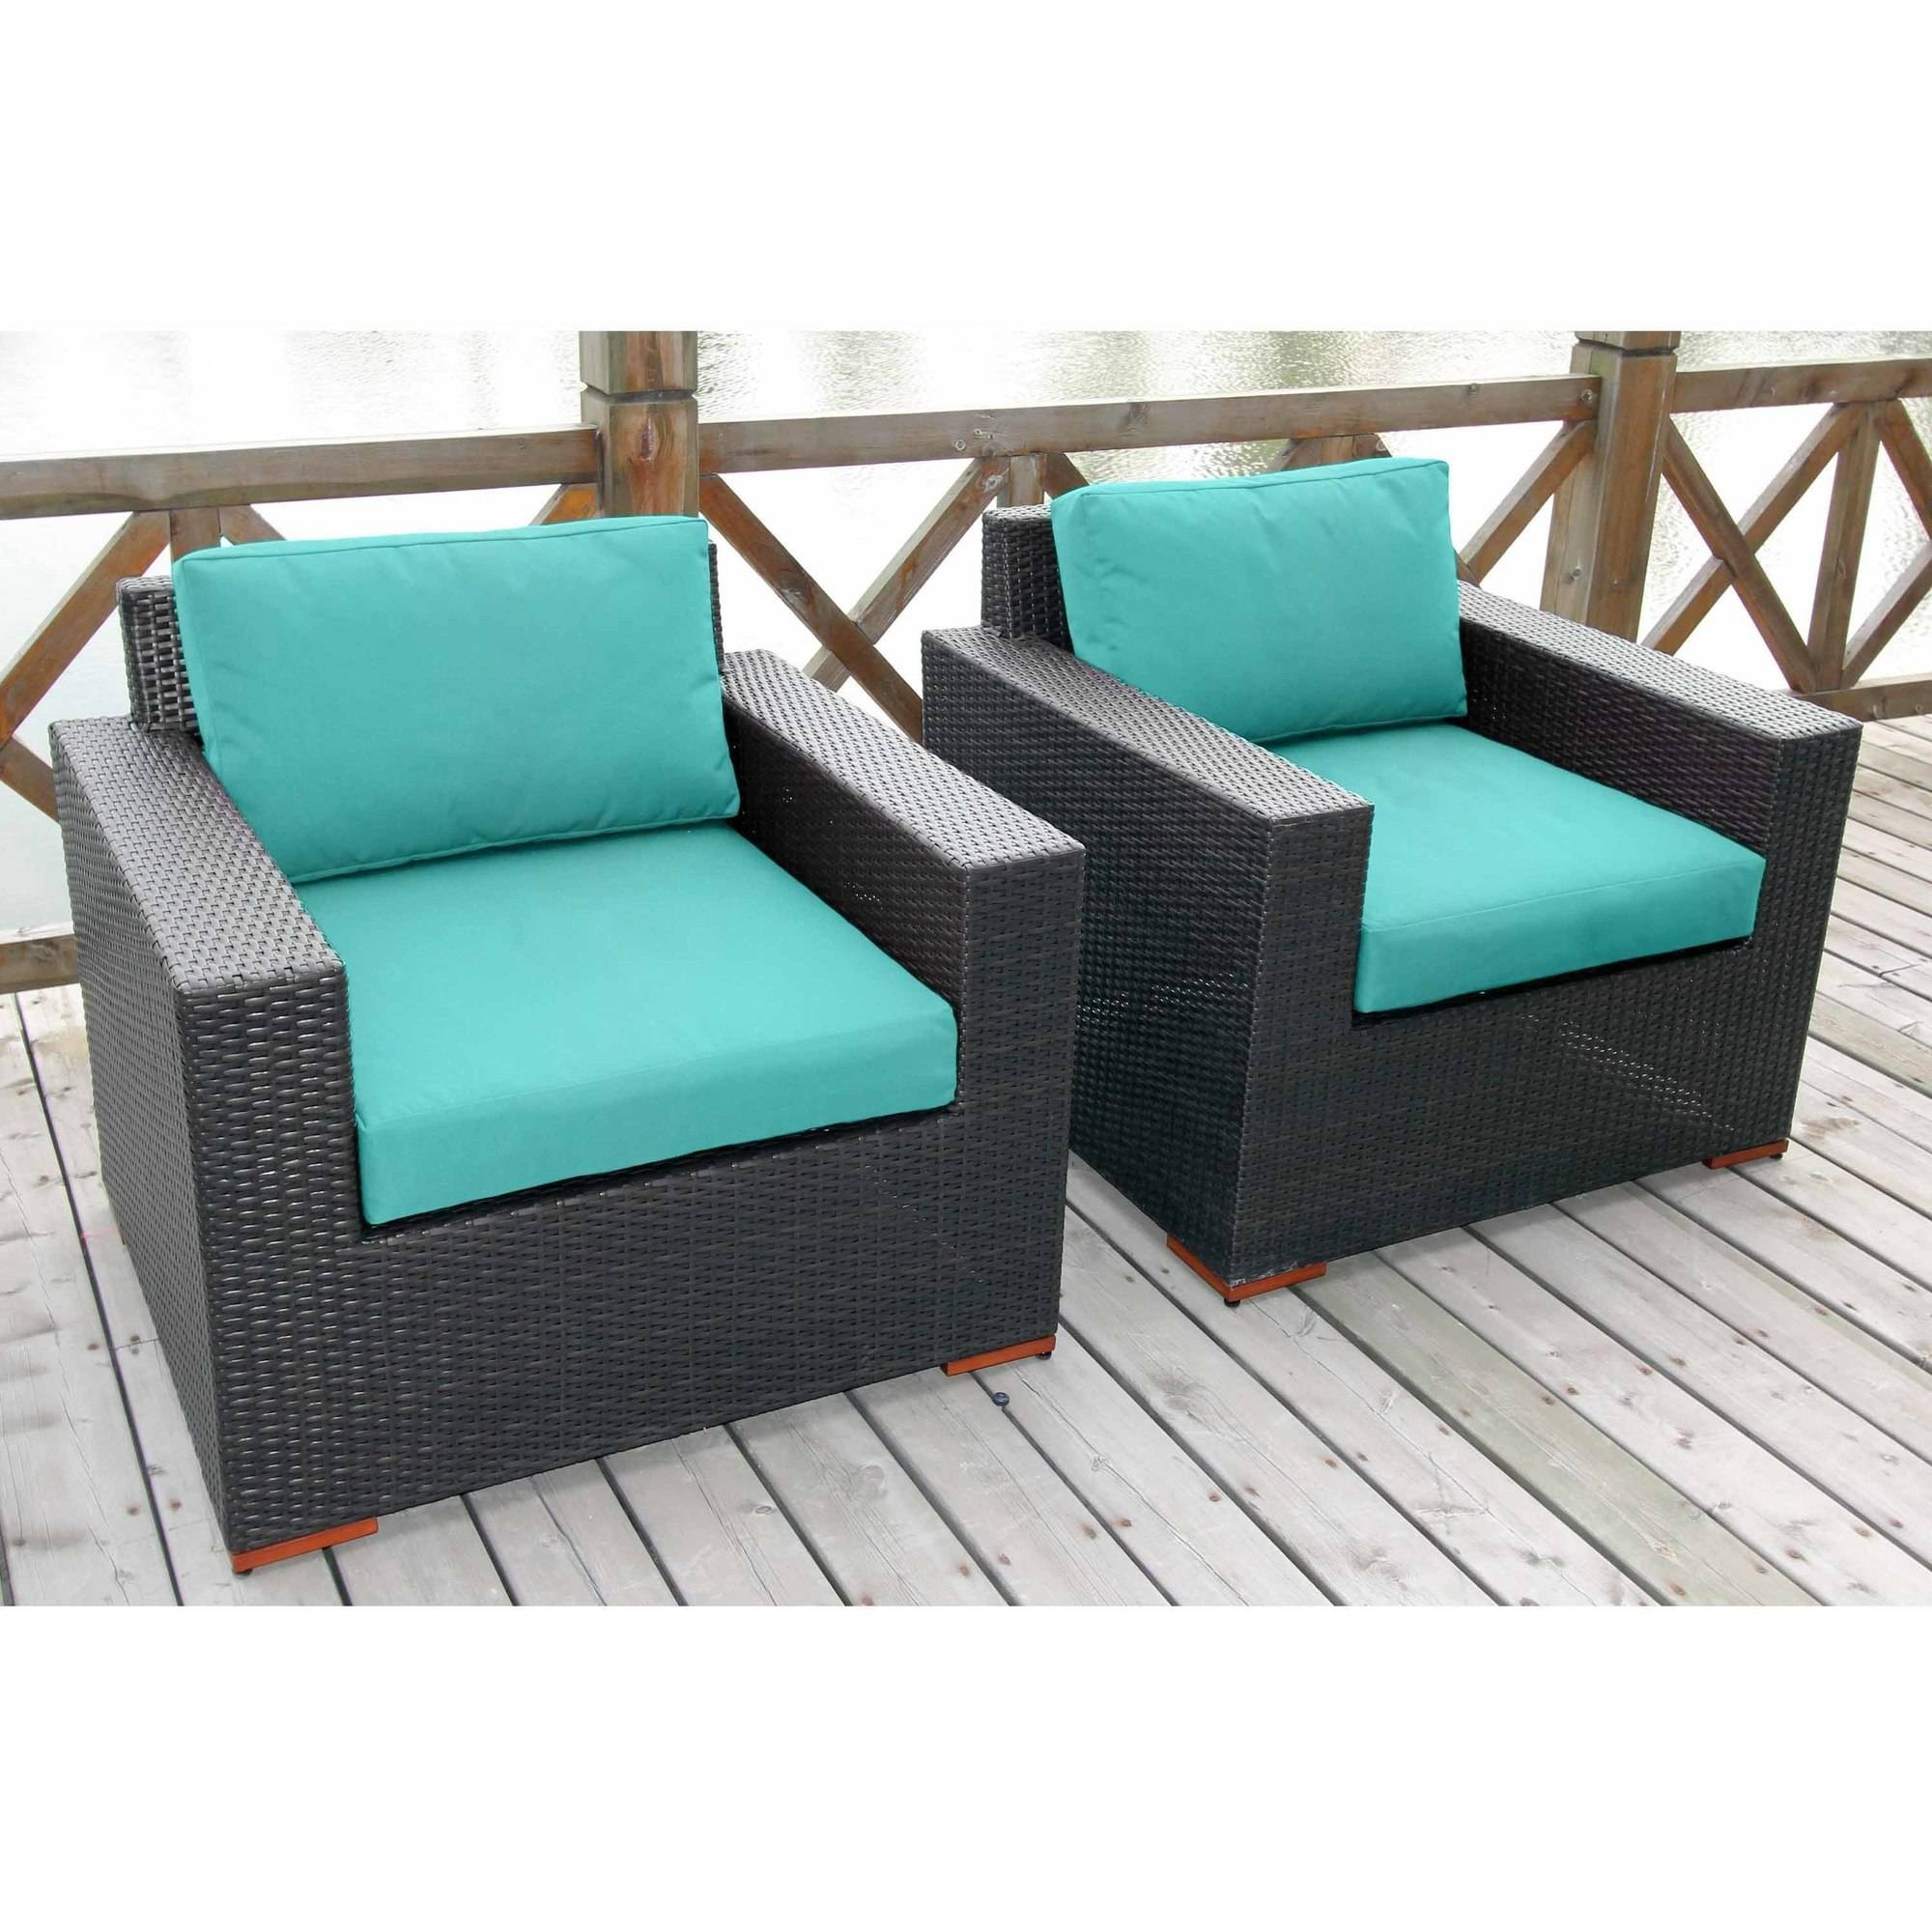 Nevis Deep Seating Club Chairs, Set of 2